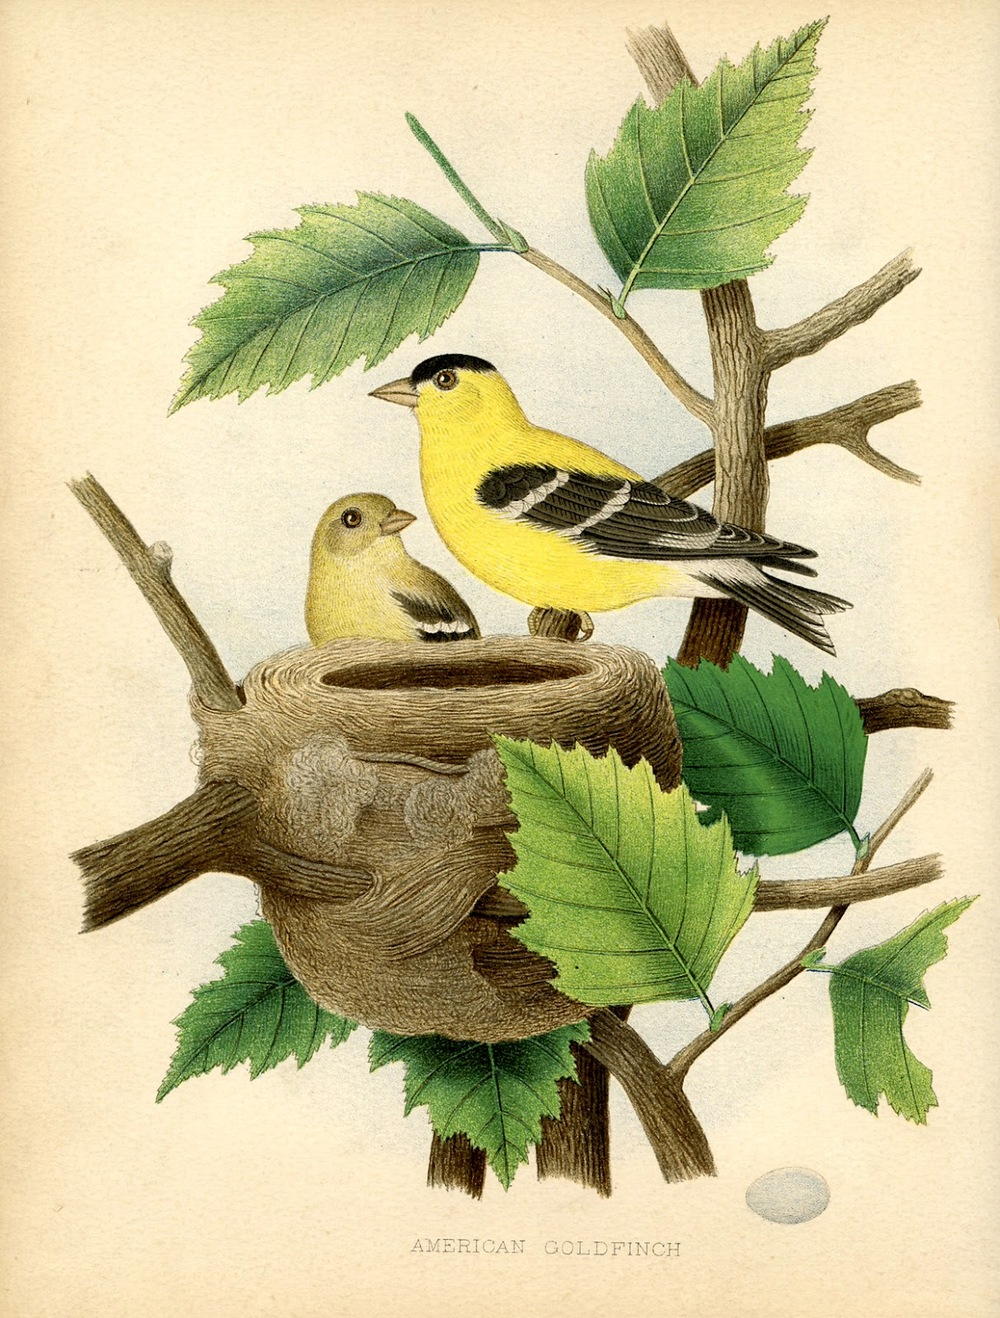 goldfinch+nest+vintage+image+GraphicsFairysm.jpg